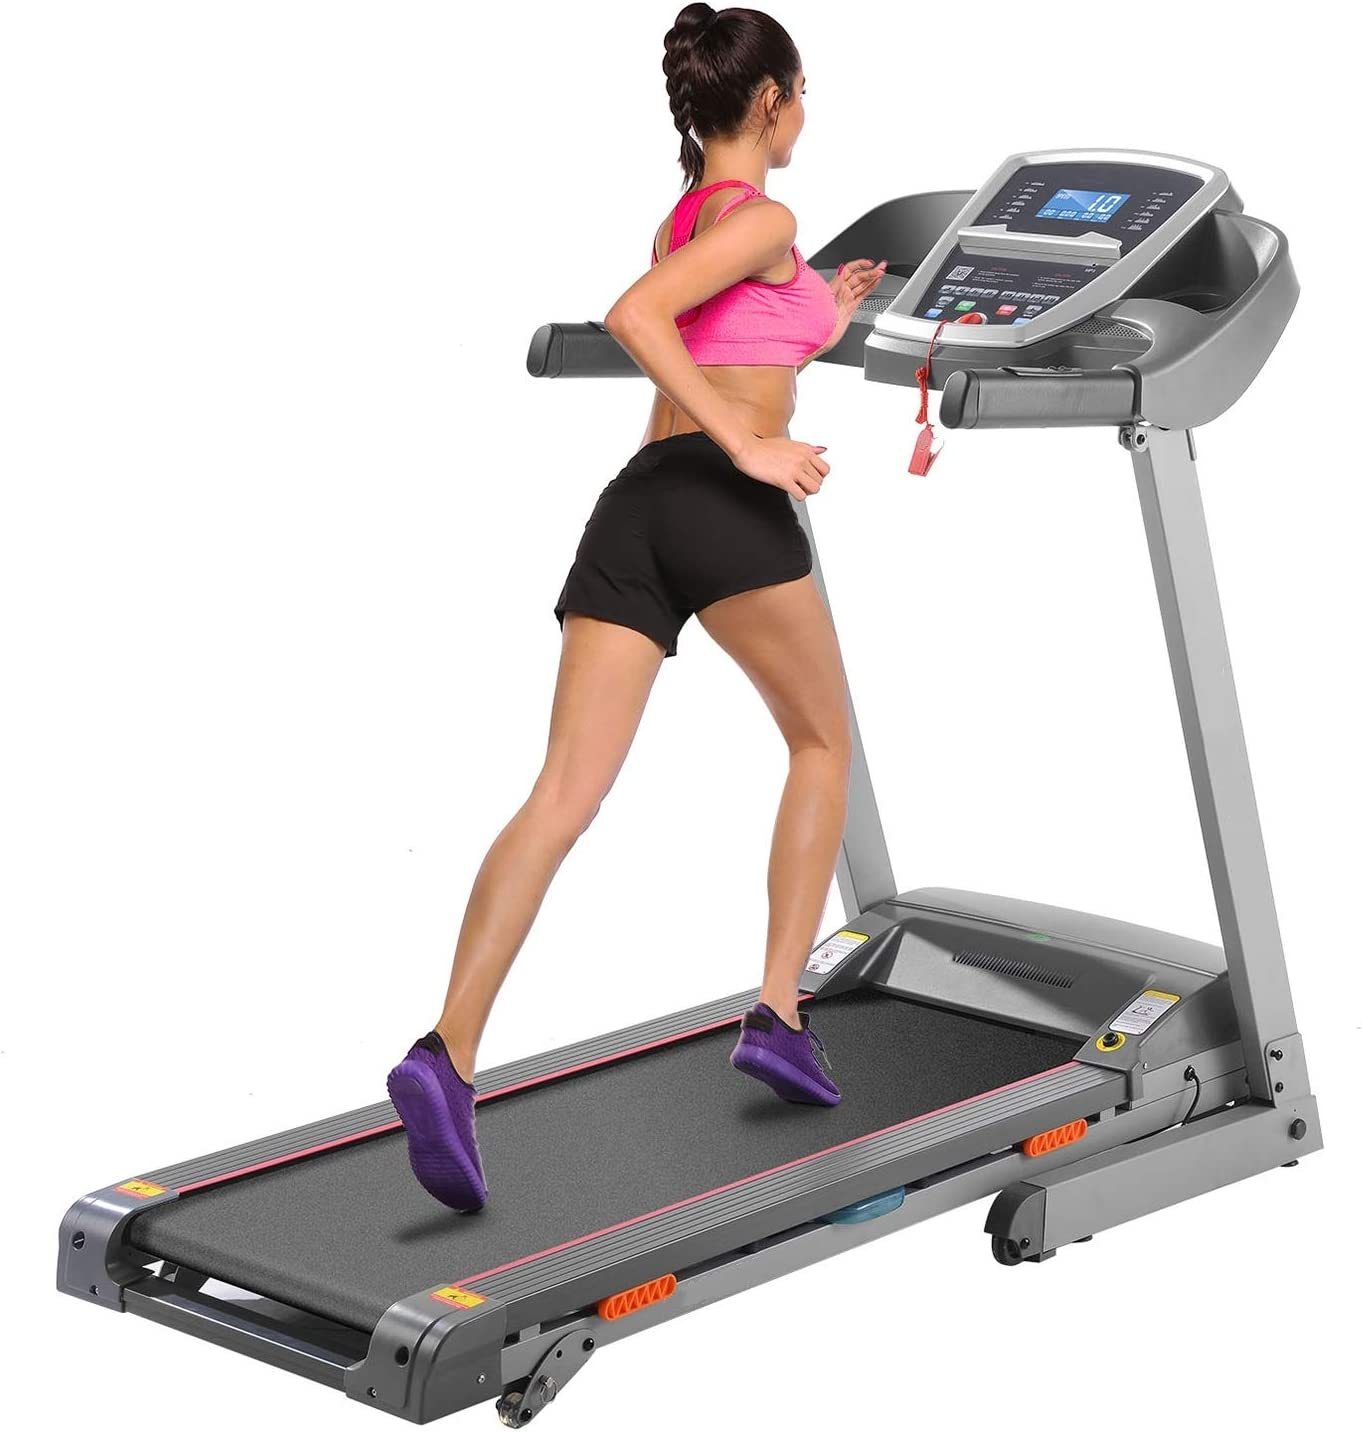 Caroma Folding Treadmill for Max 56% OFF Home Incline Brand new with Electric 3.0 HP